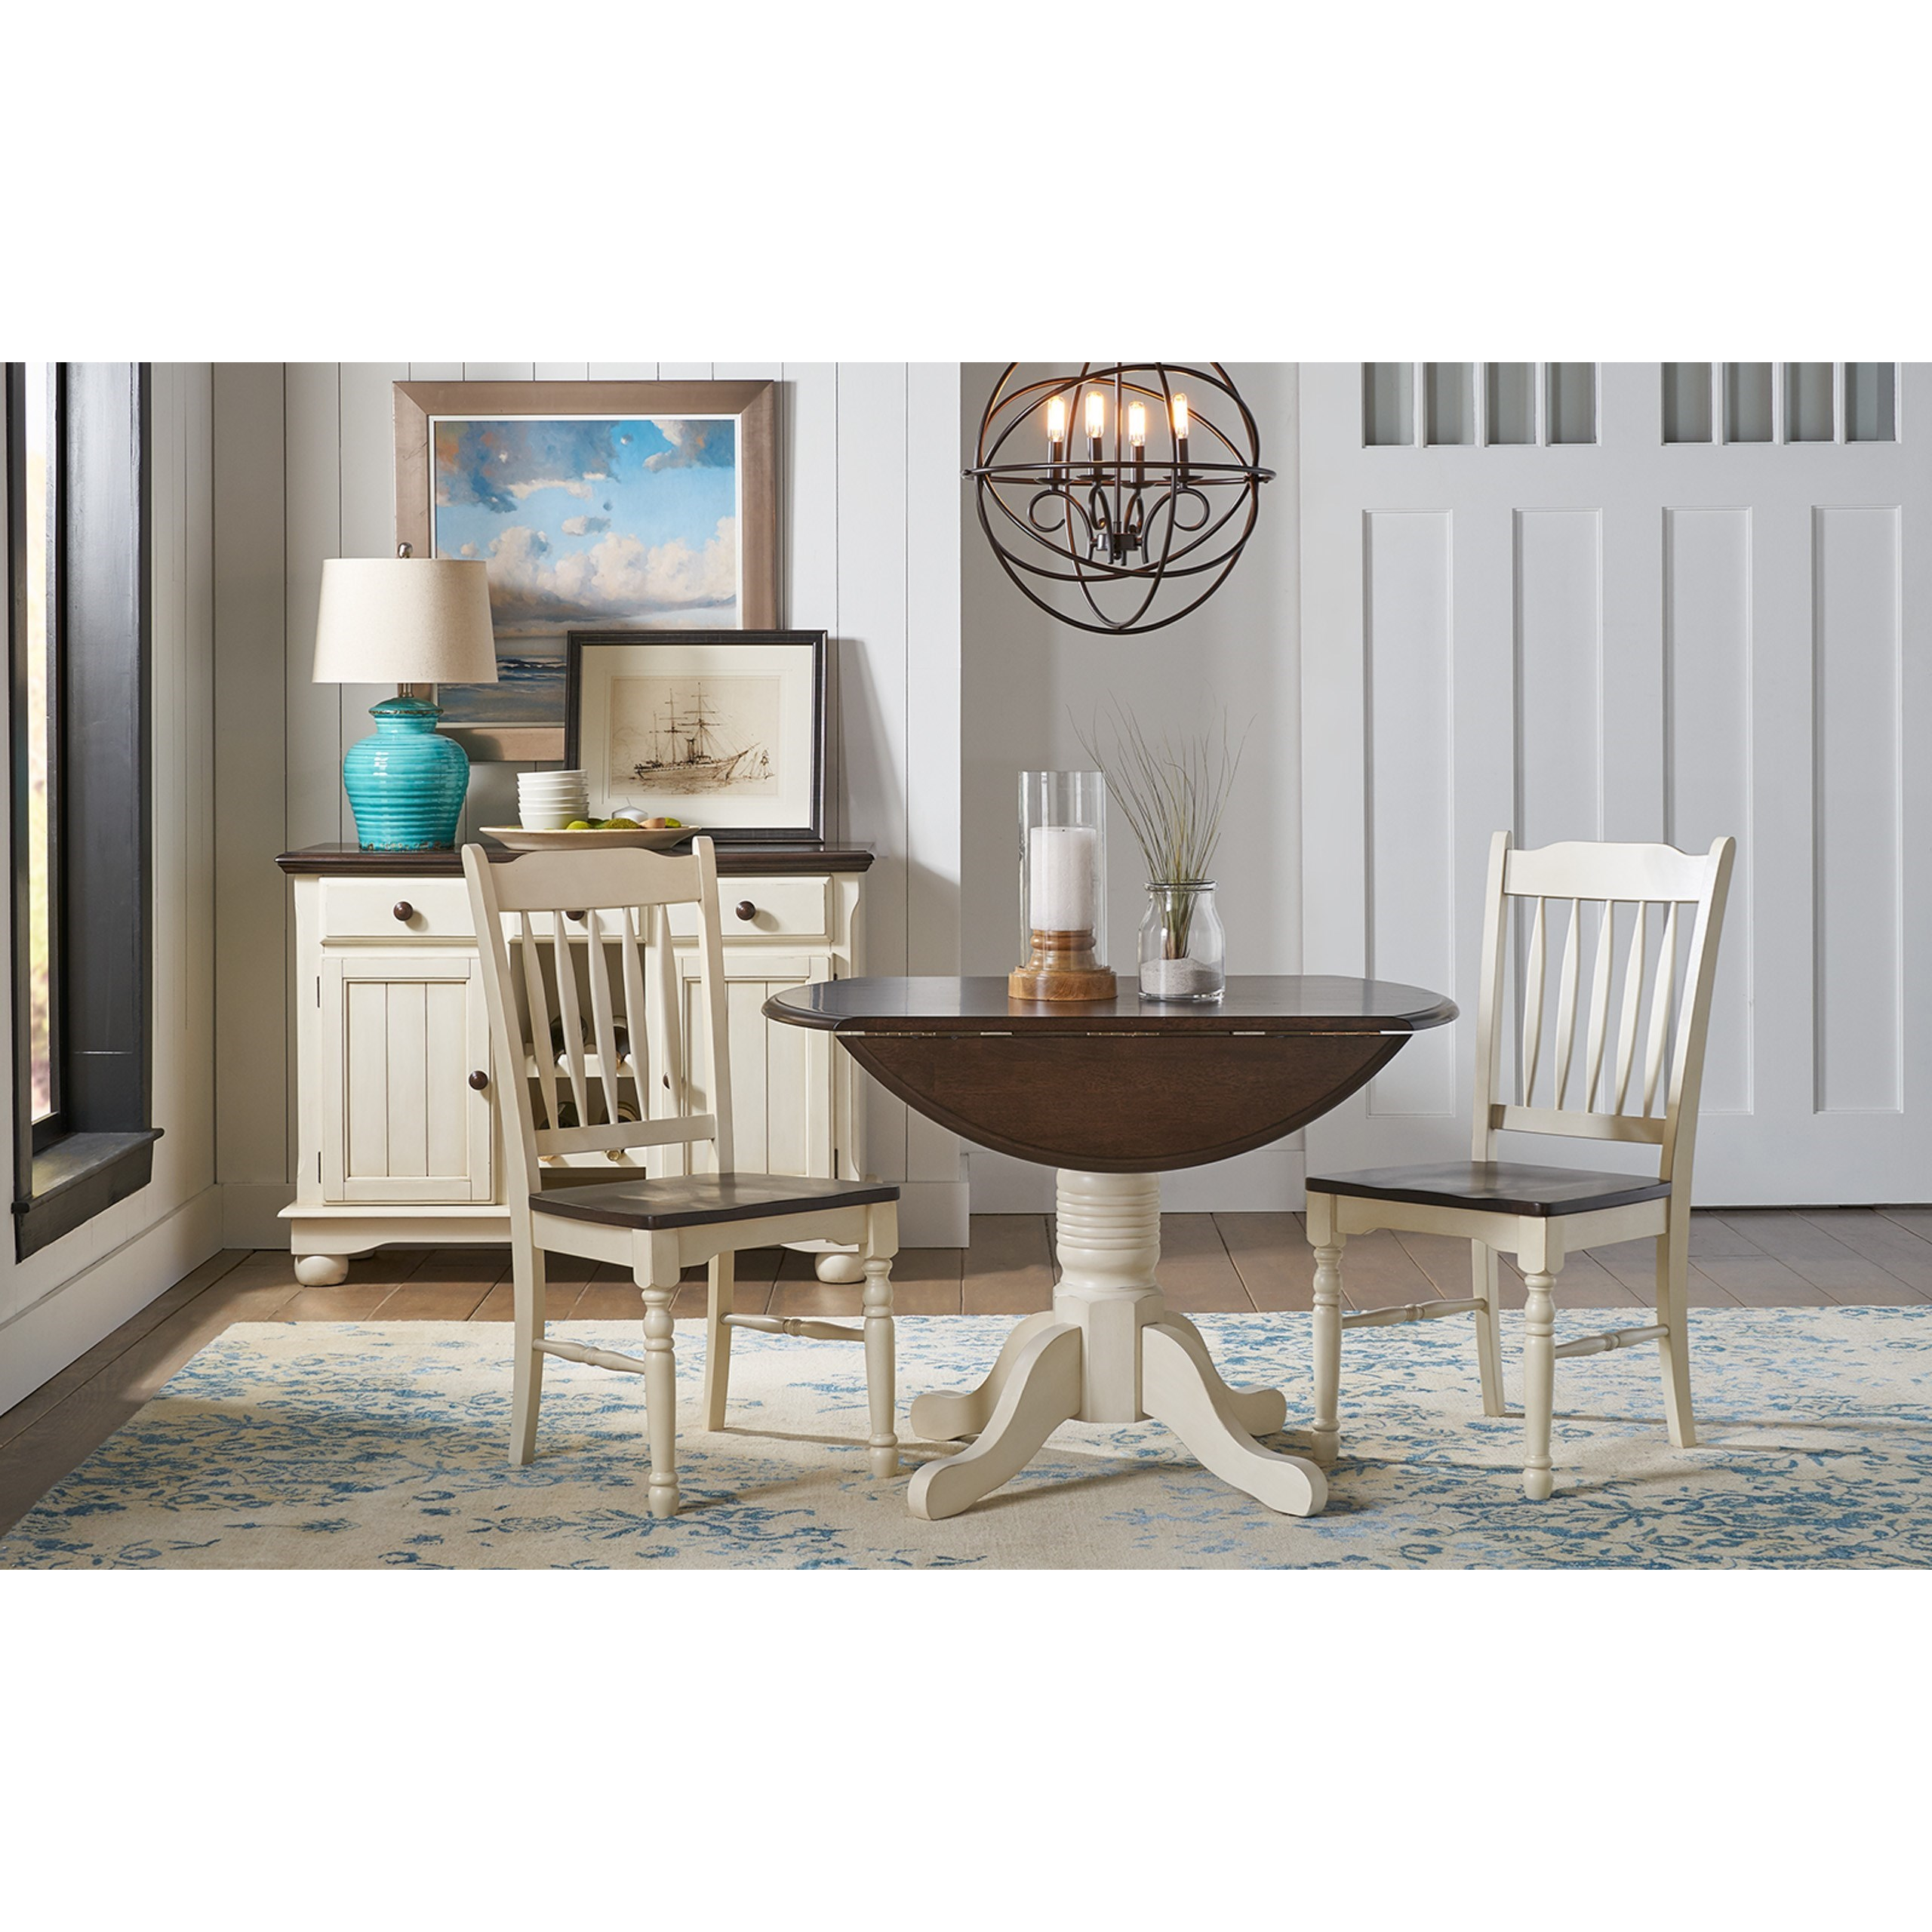 British Isles - CO 3 Piece Dining Set by AAmerica at Zak's Home